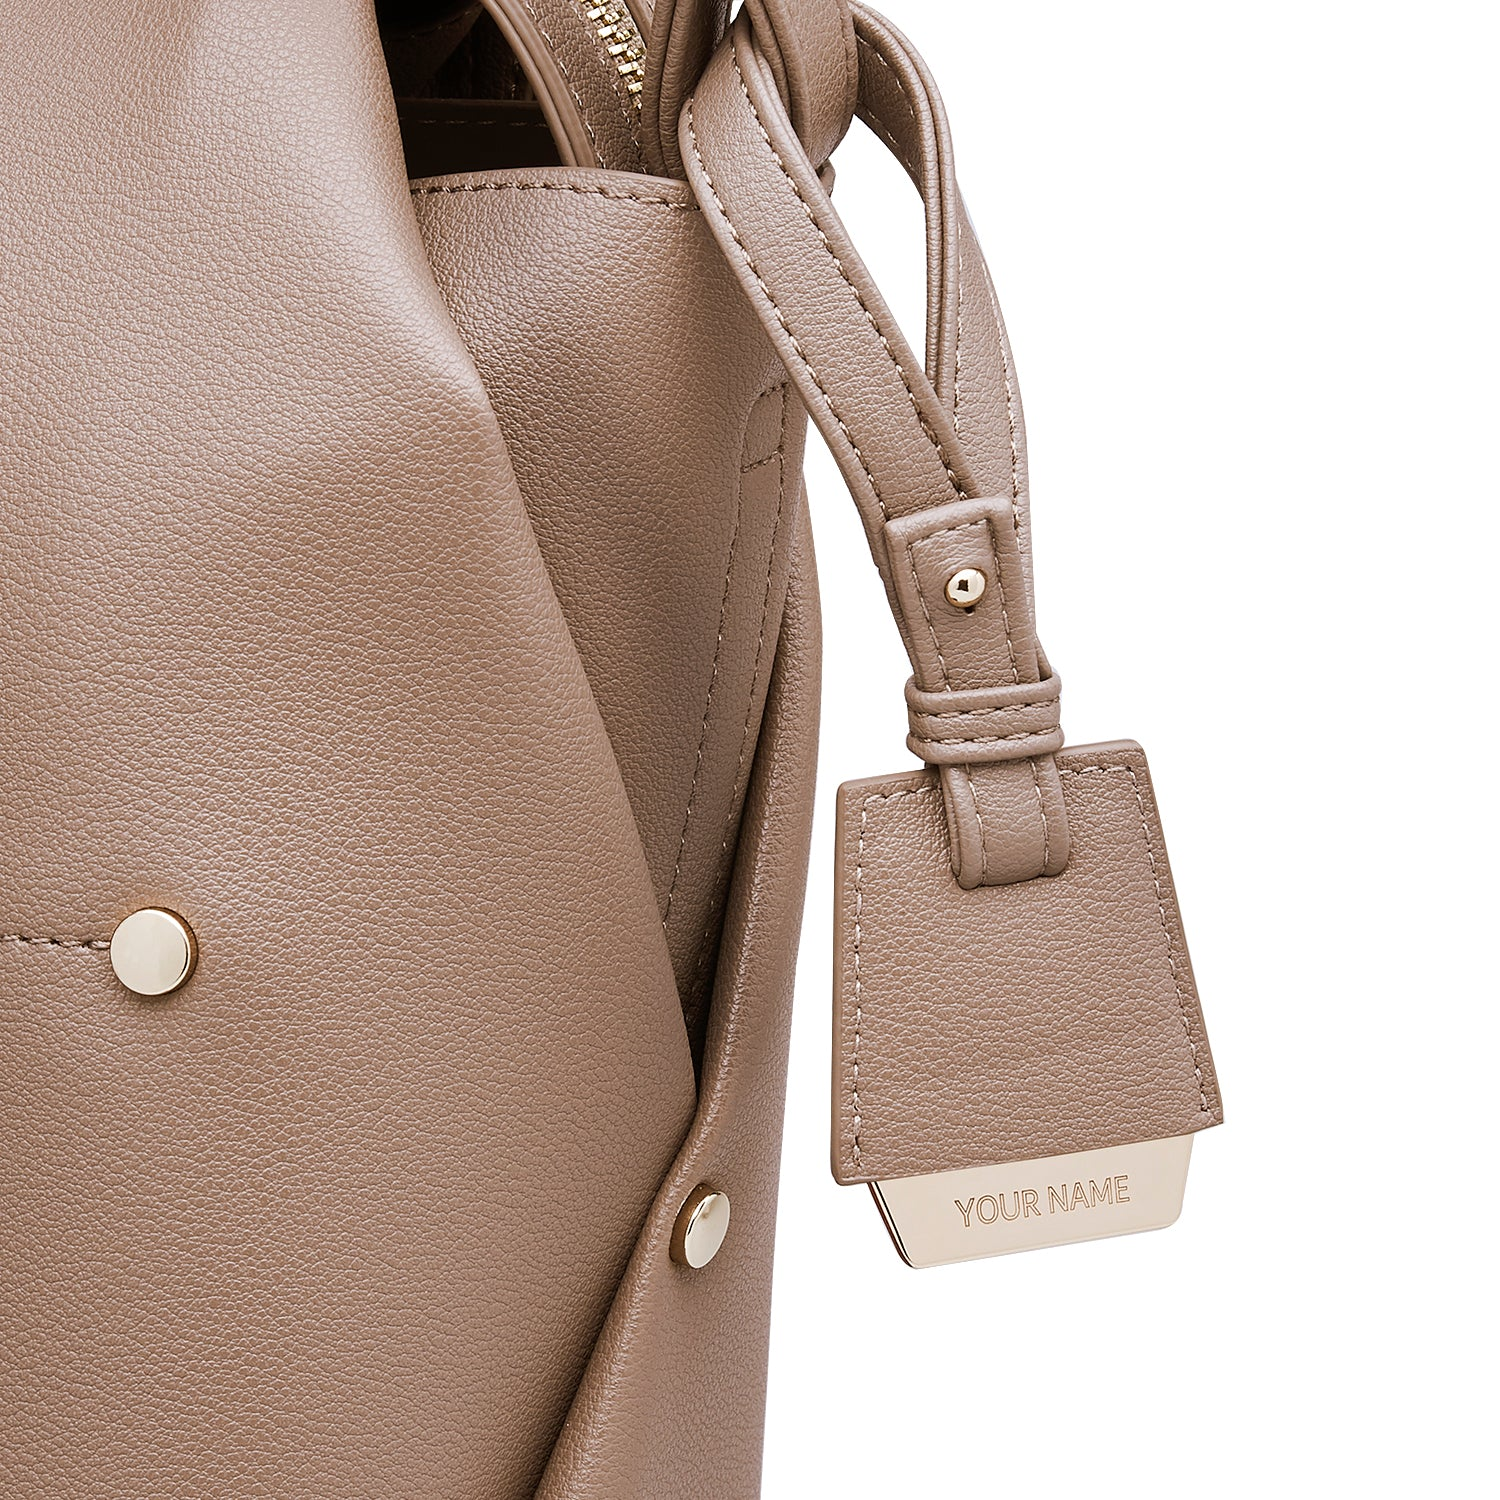 COLEY BAG TAG - MOCHA